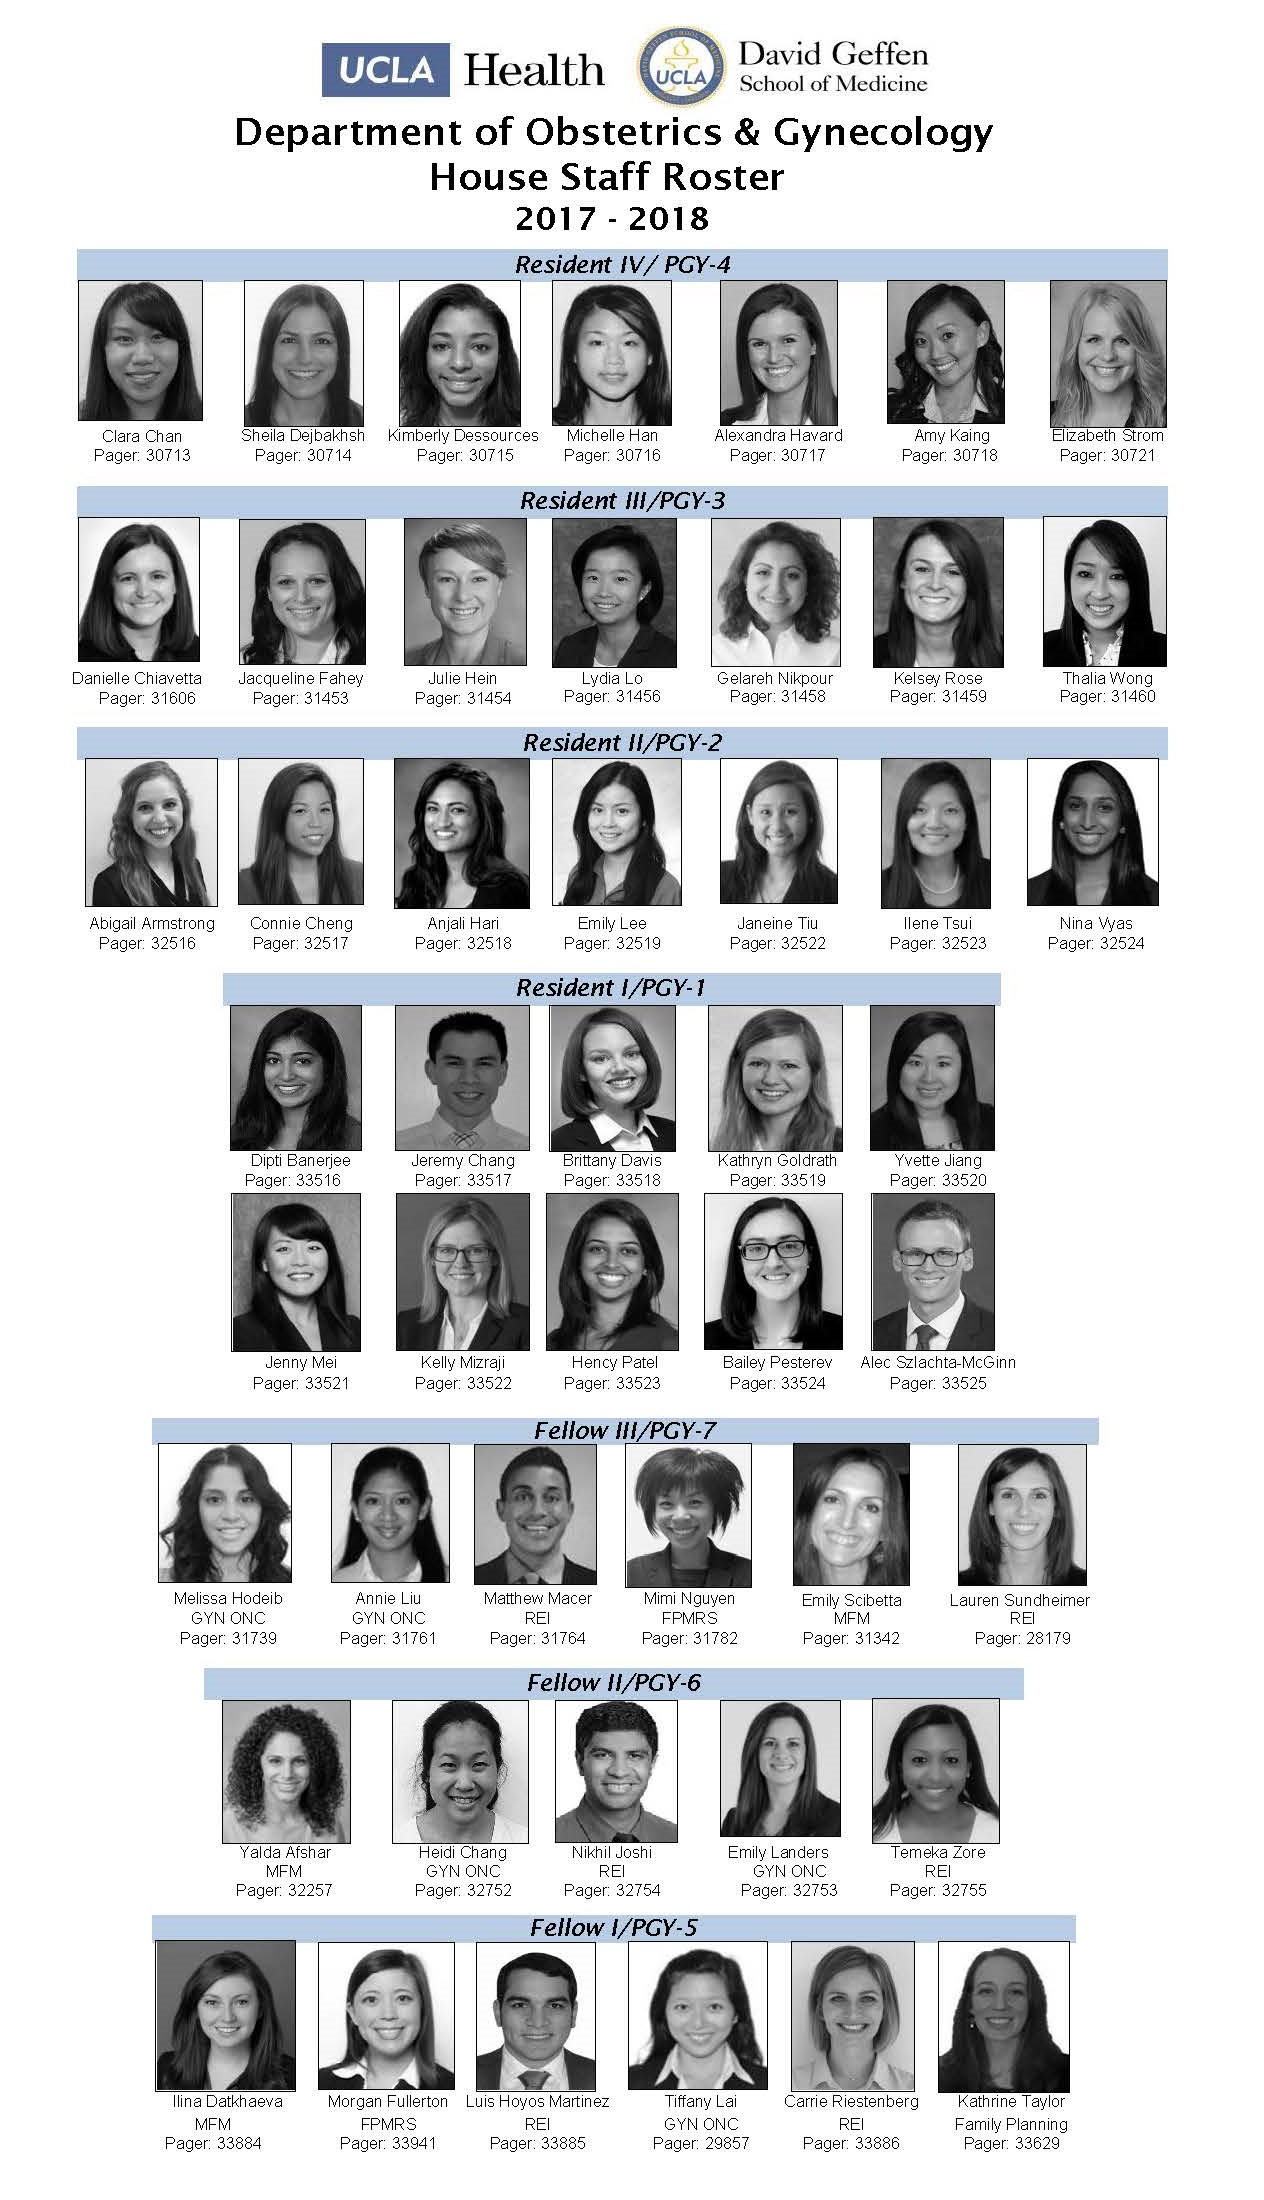 OBGYN House Staff Roster 2017-2018.jpg